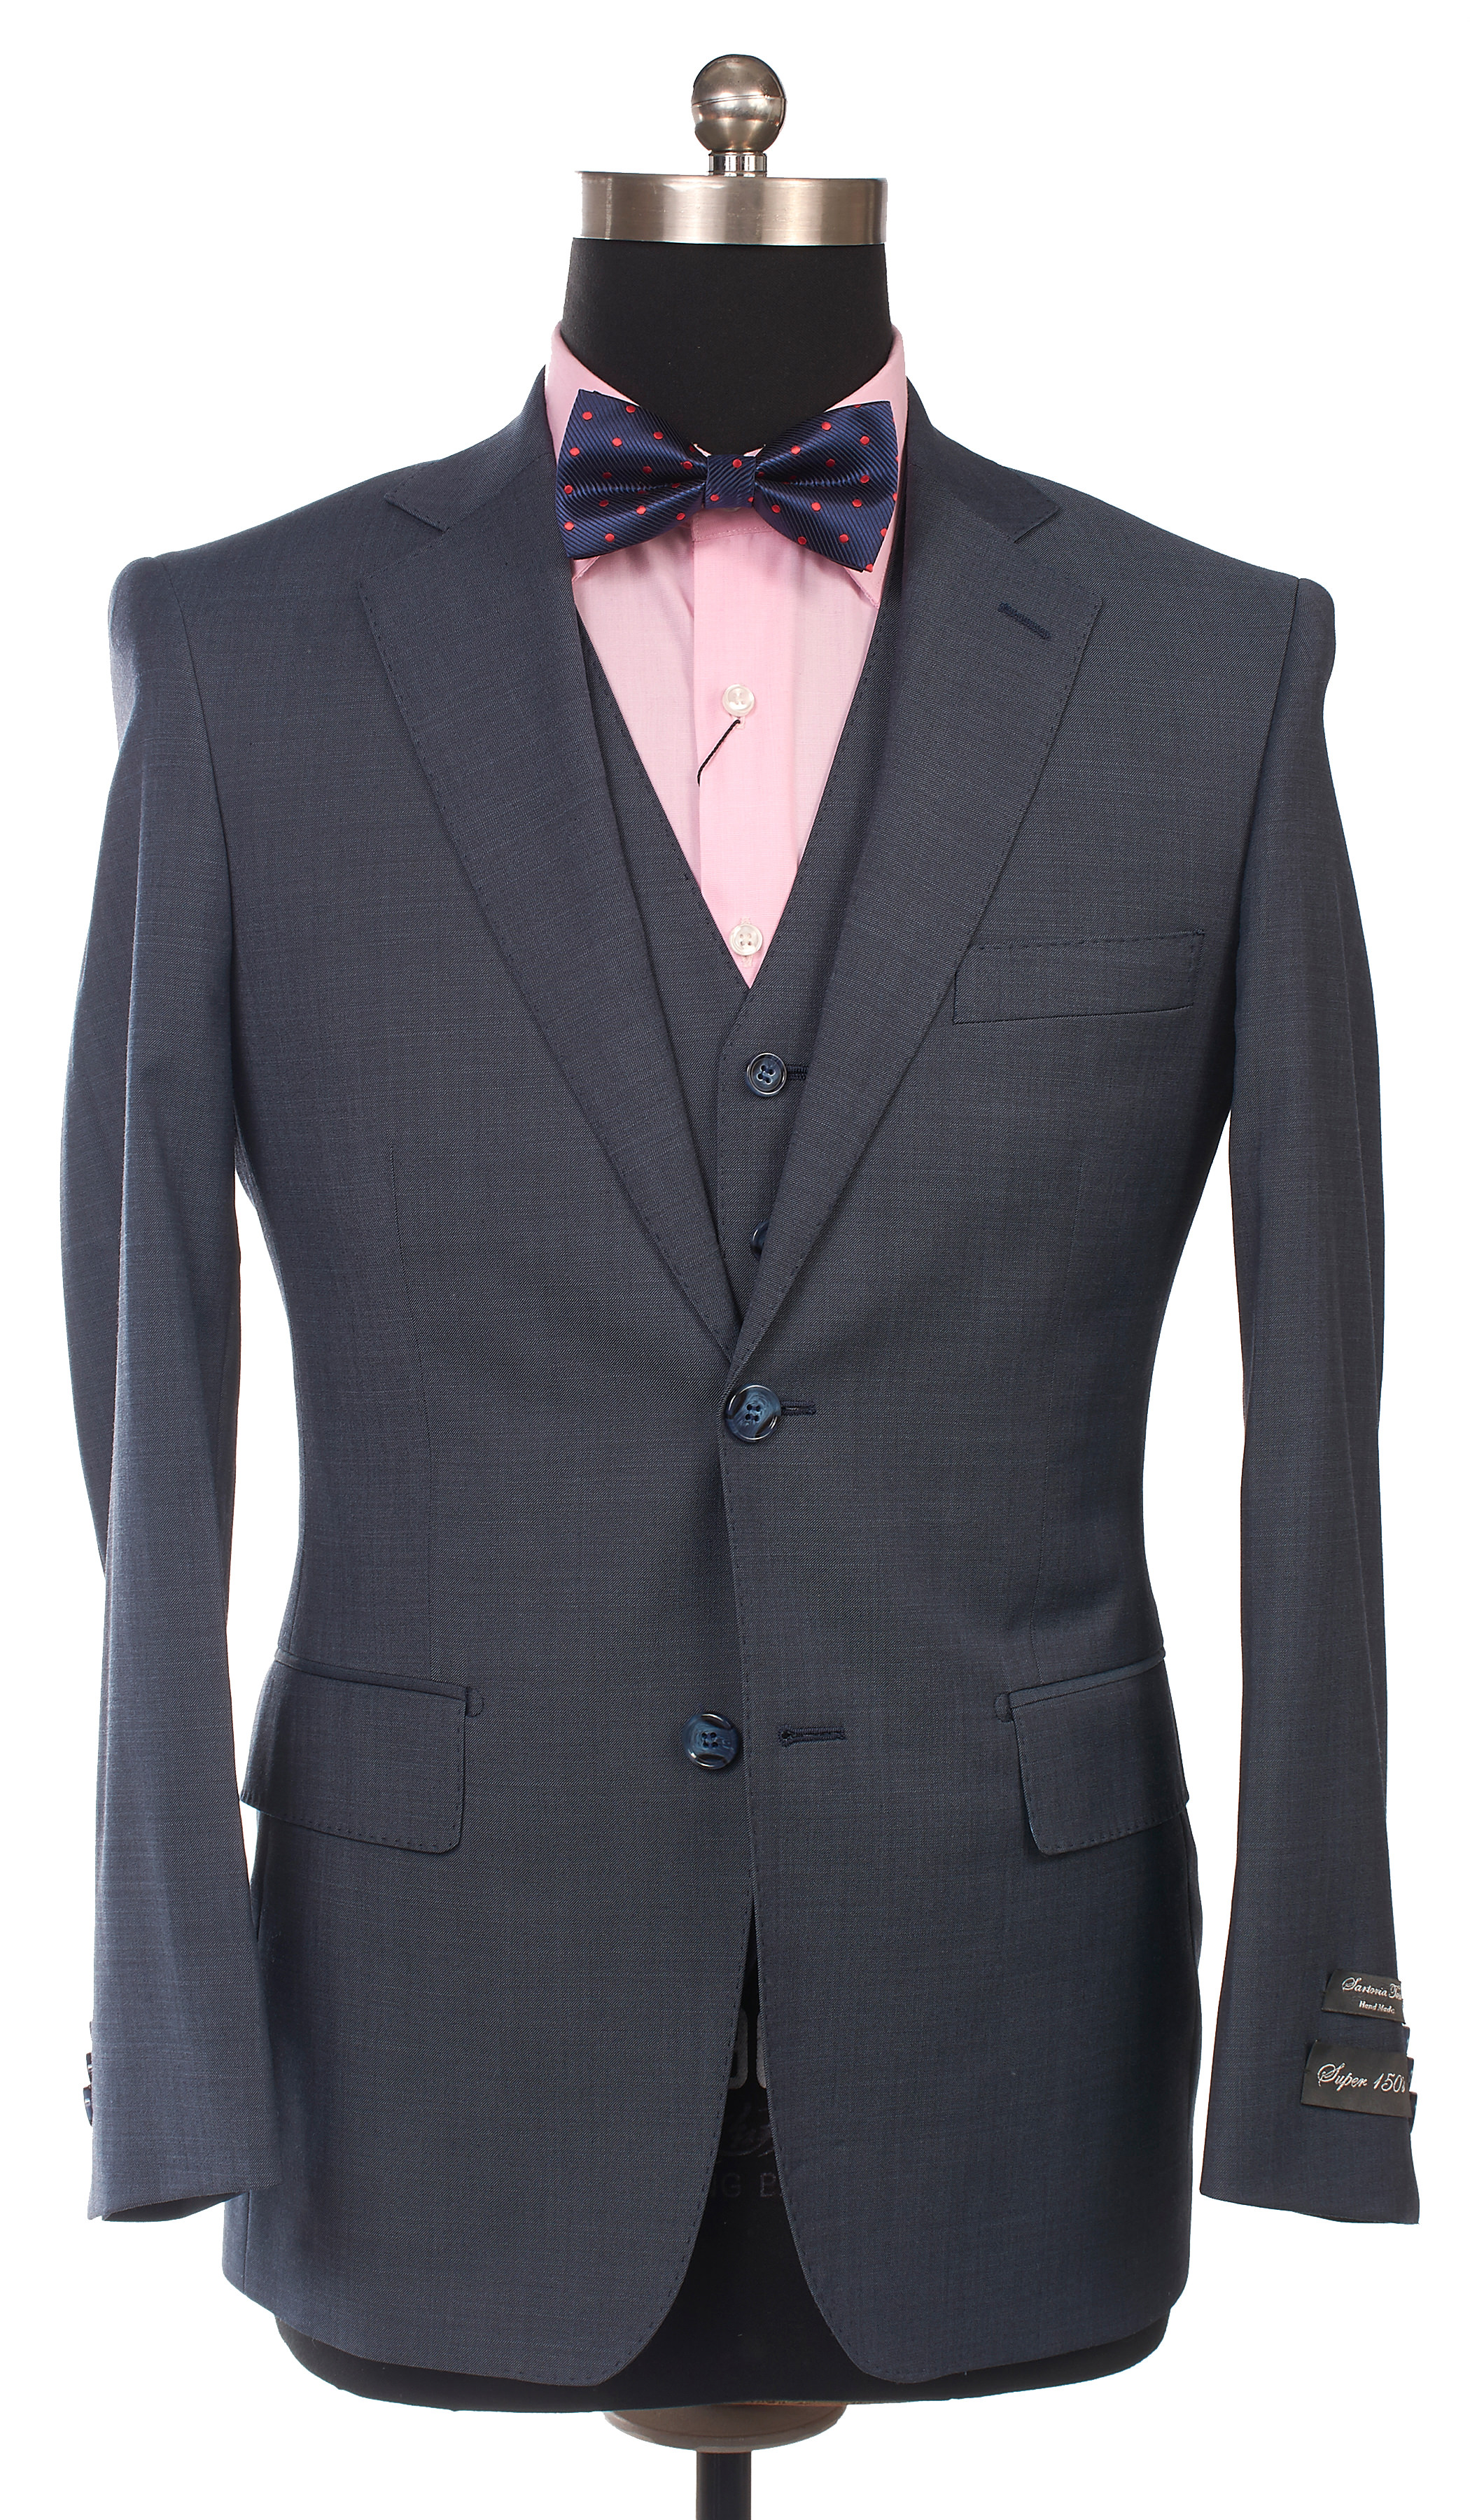 Sartoria Tosi Medium Blue Suit – SRG Fashion